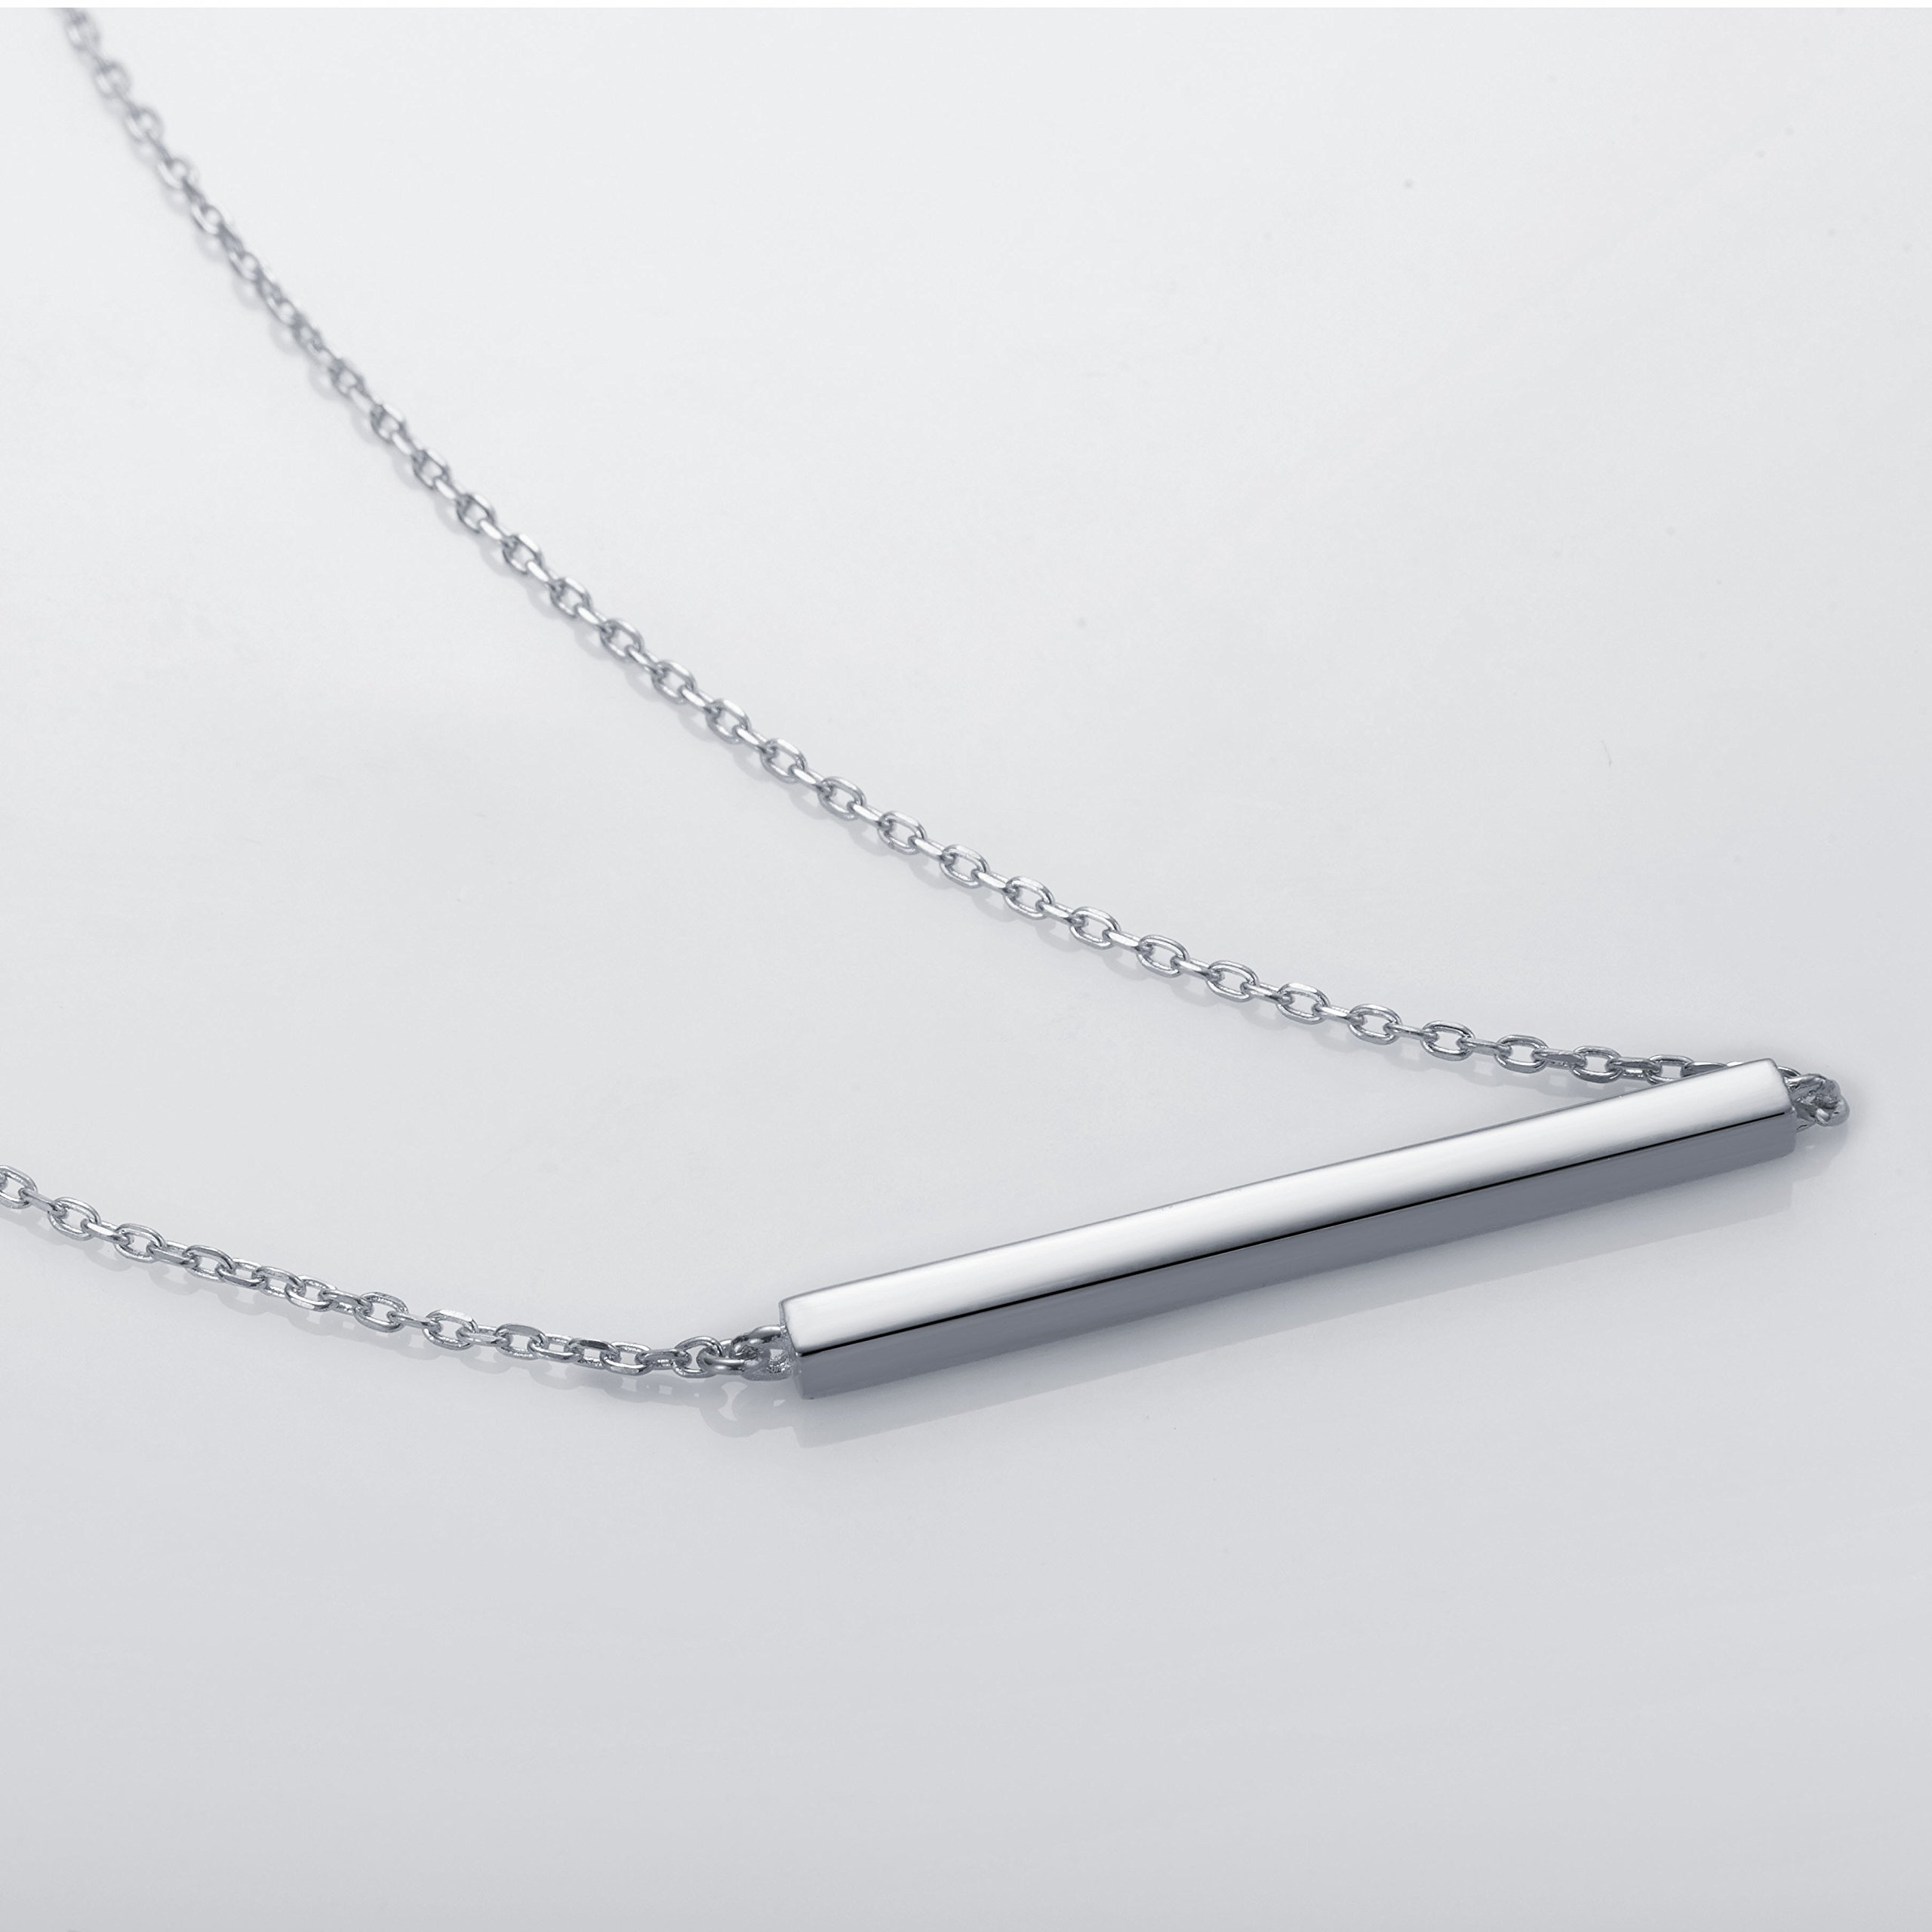 S.Leaf Bar Necklace Sterling Silver Minimalism Line Necklace Horizontal Bar Necklace (Necklace-White Gold) by S.Leaf (Image #3)